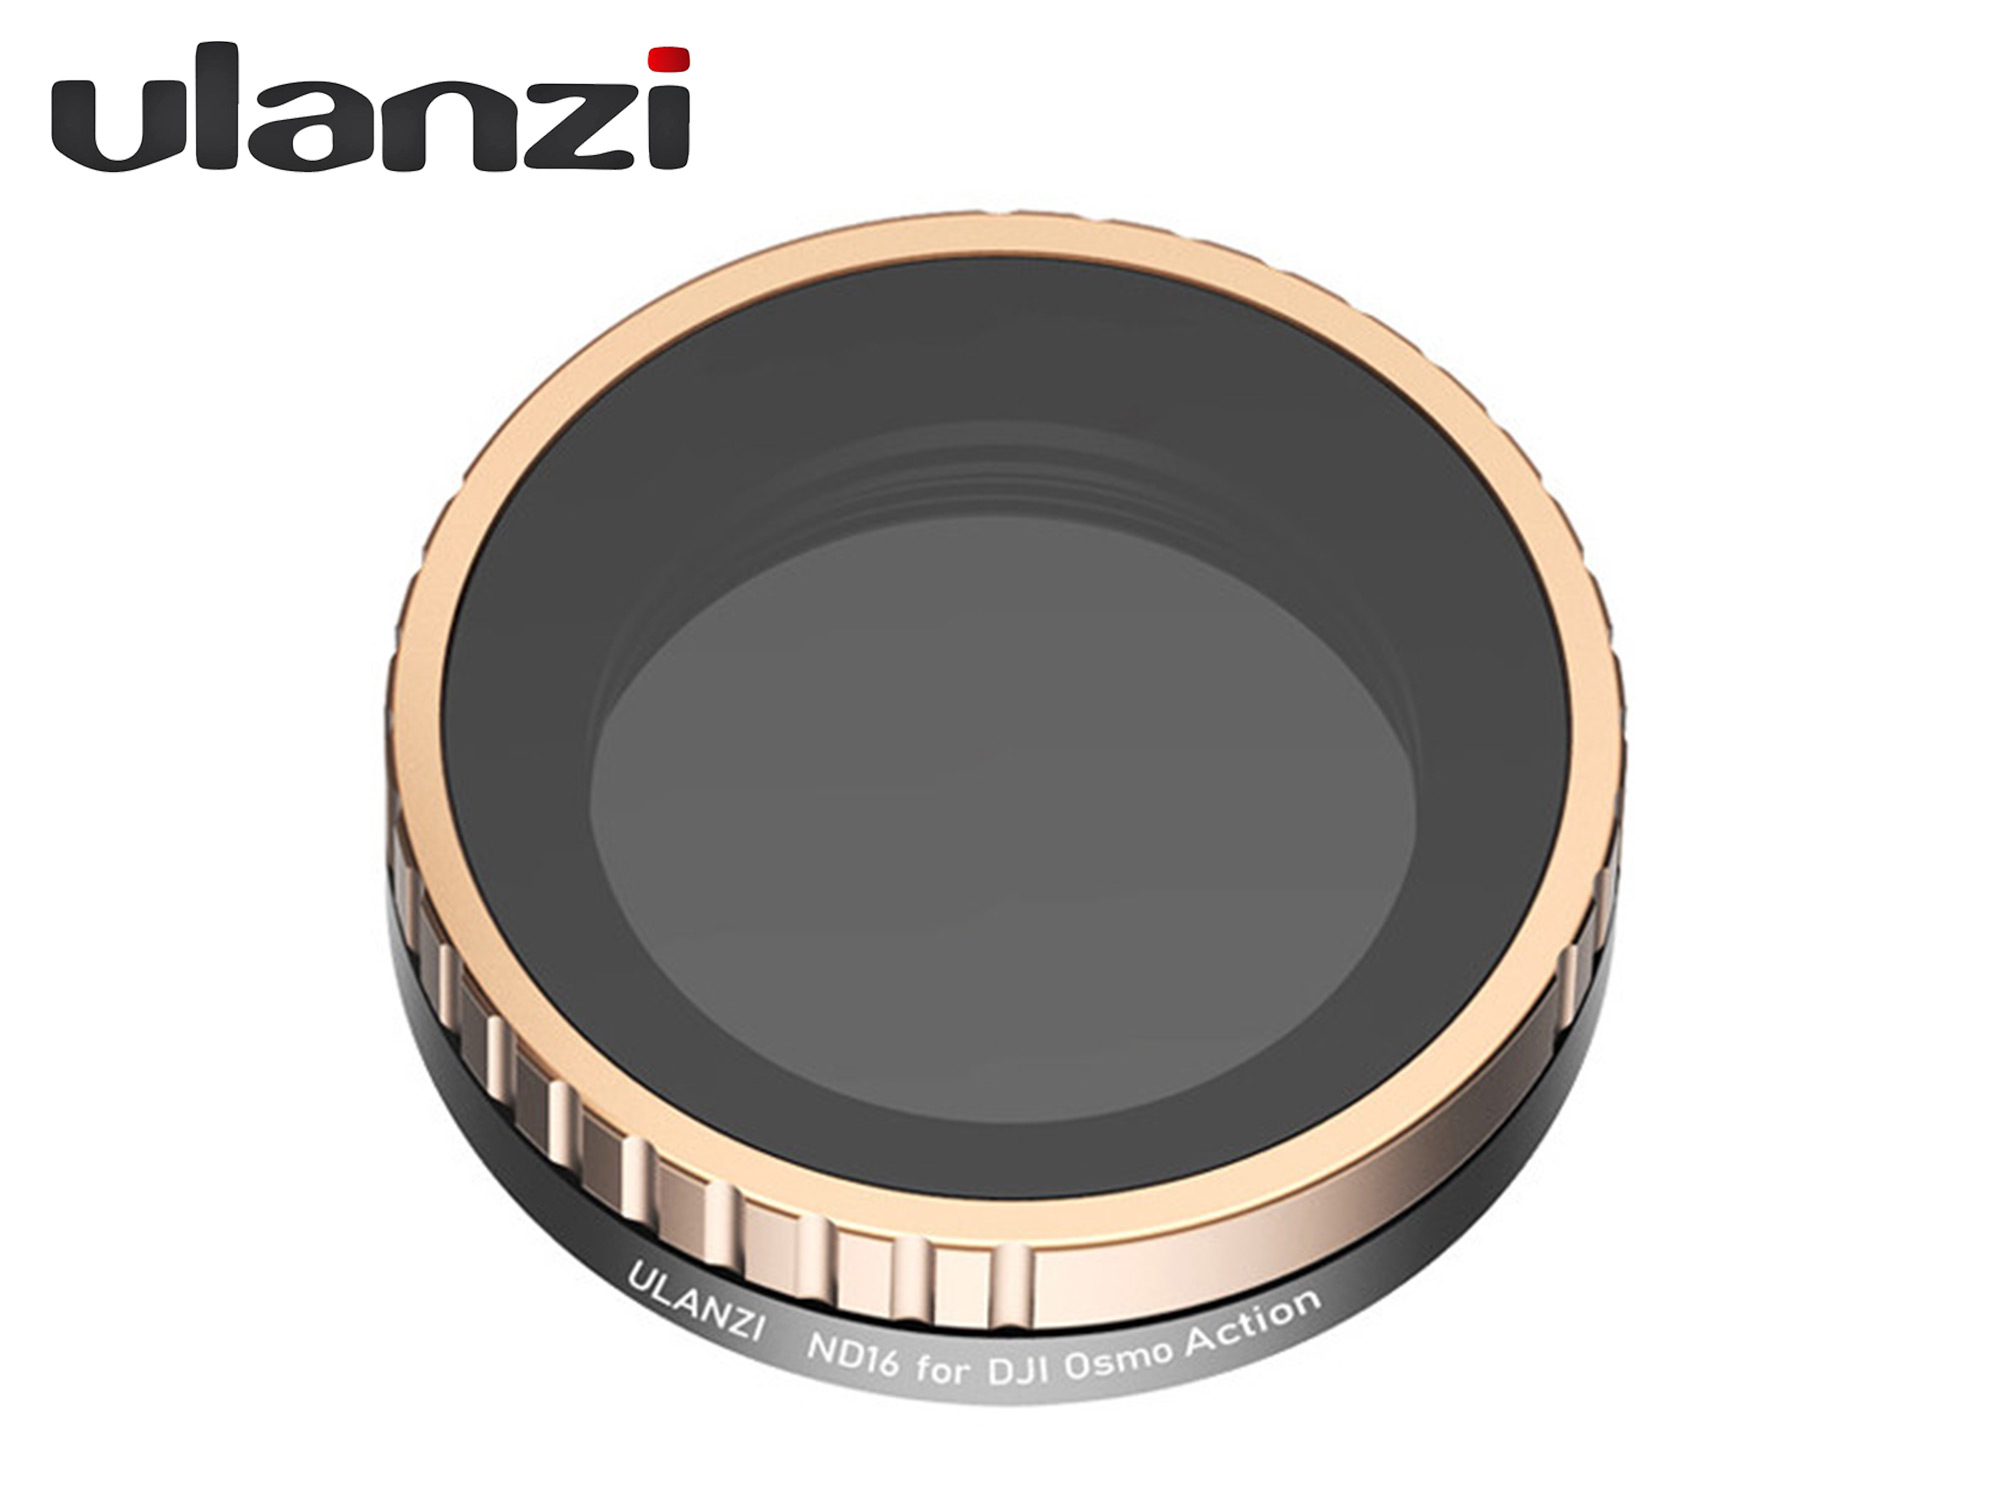 Ulanzi ND Filter for Osmo Action - ND16